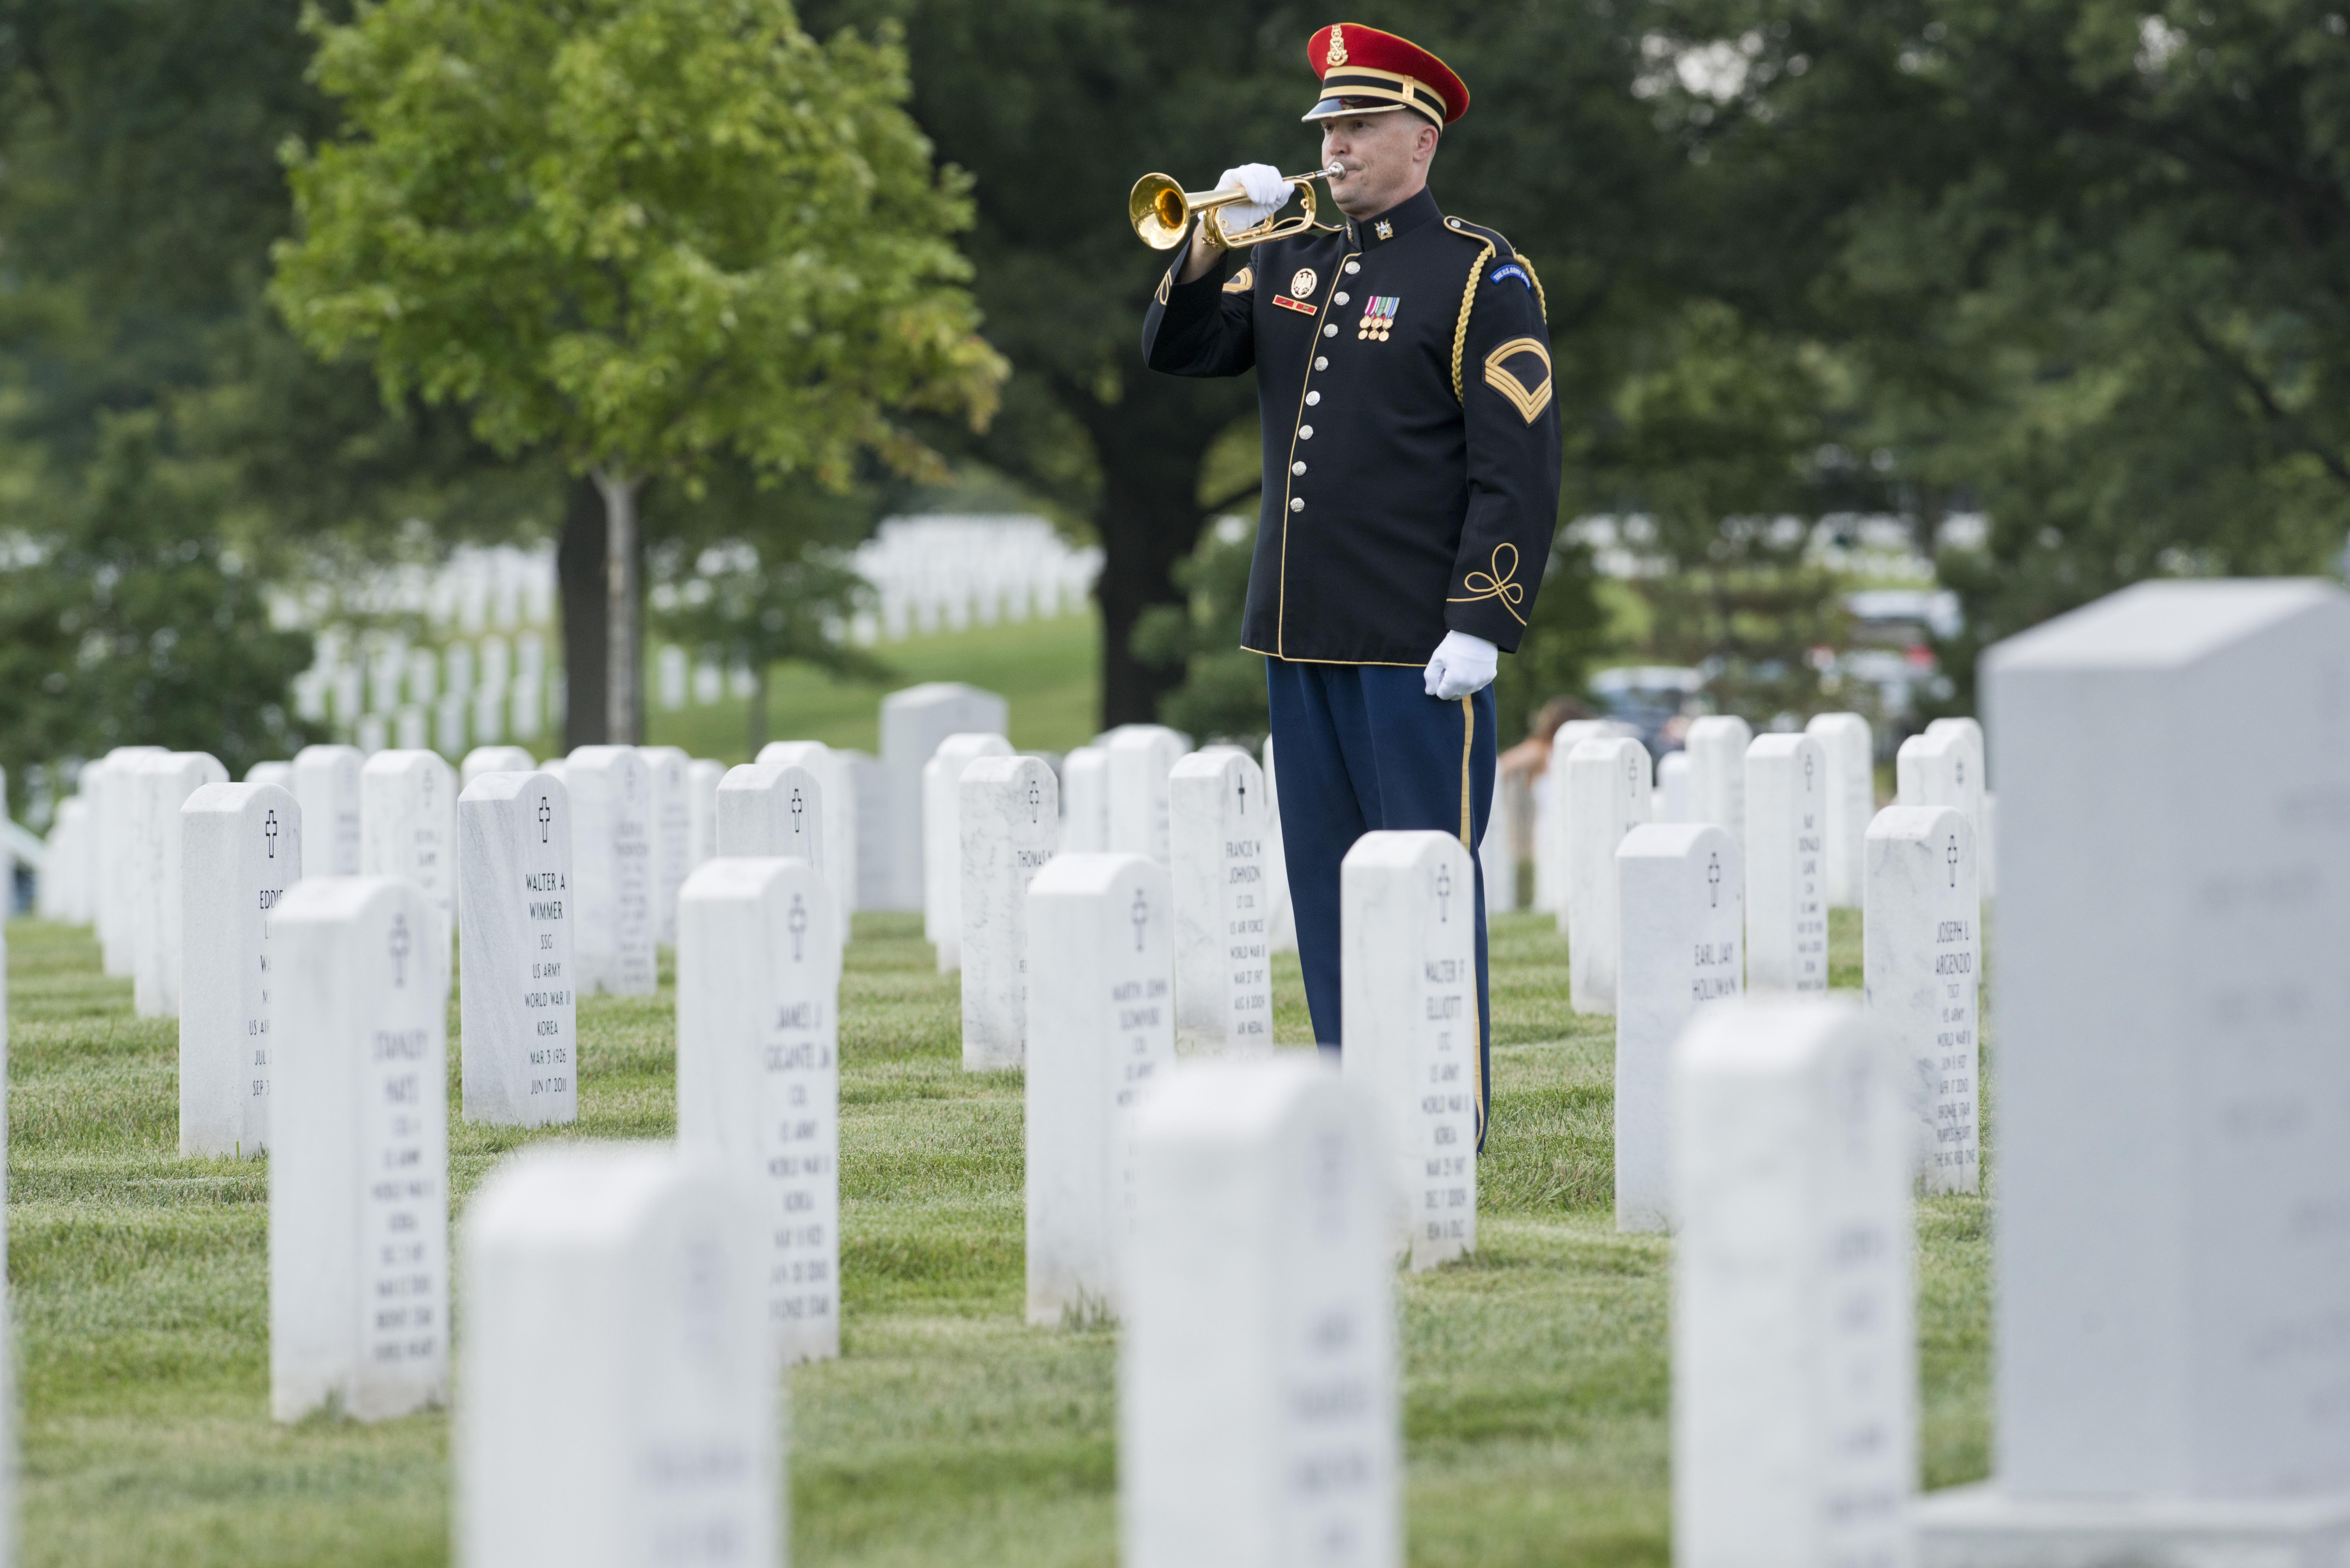 Researchers are examining ways to help bereaved military families. Many of those families' loved ones are buried in Section 60 at Arlington National Cemetery. (Alan Lessig/Staff)